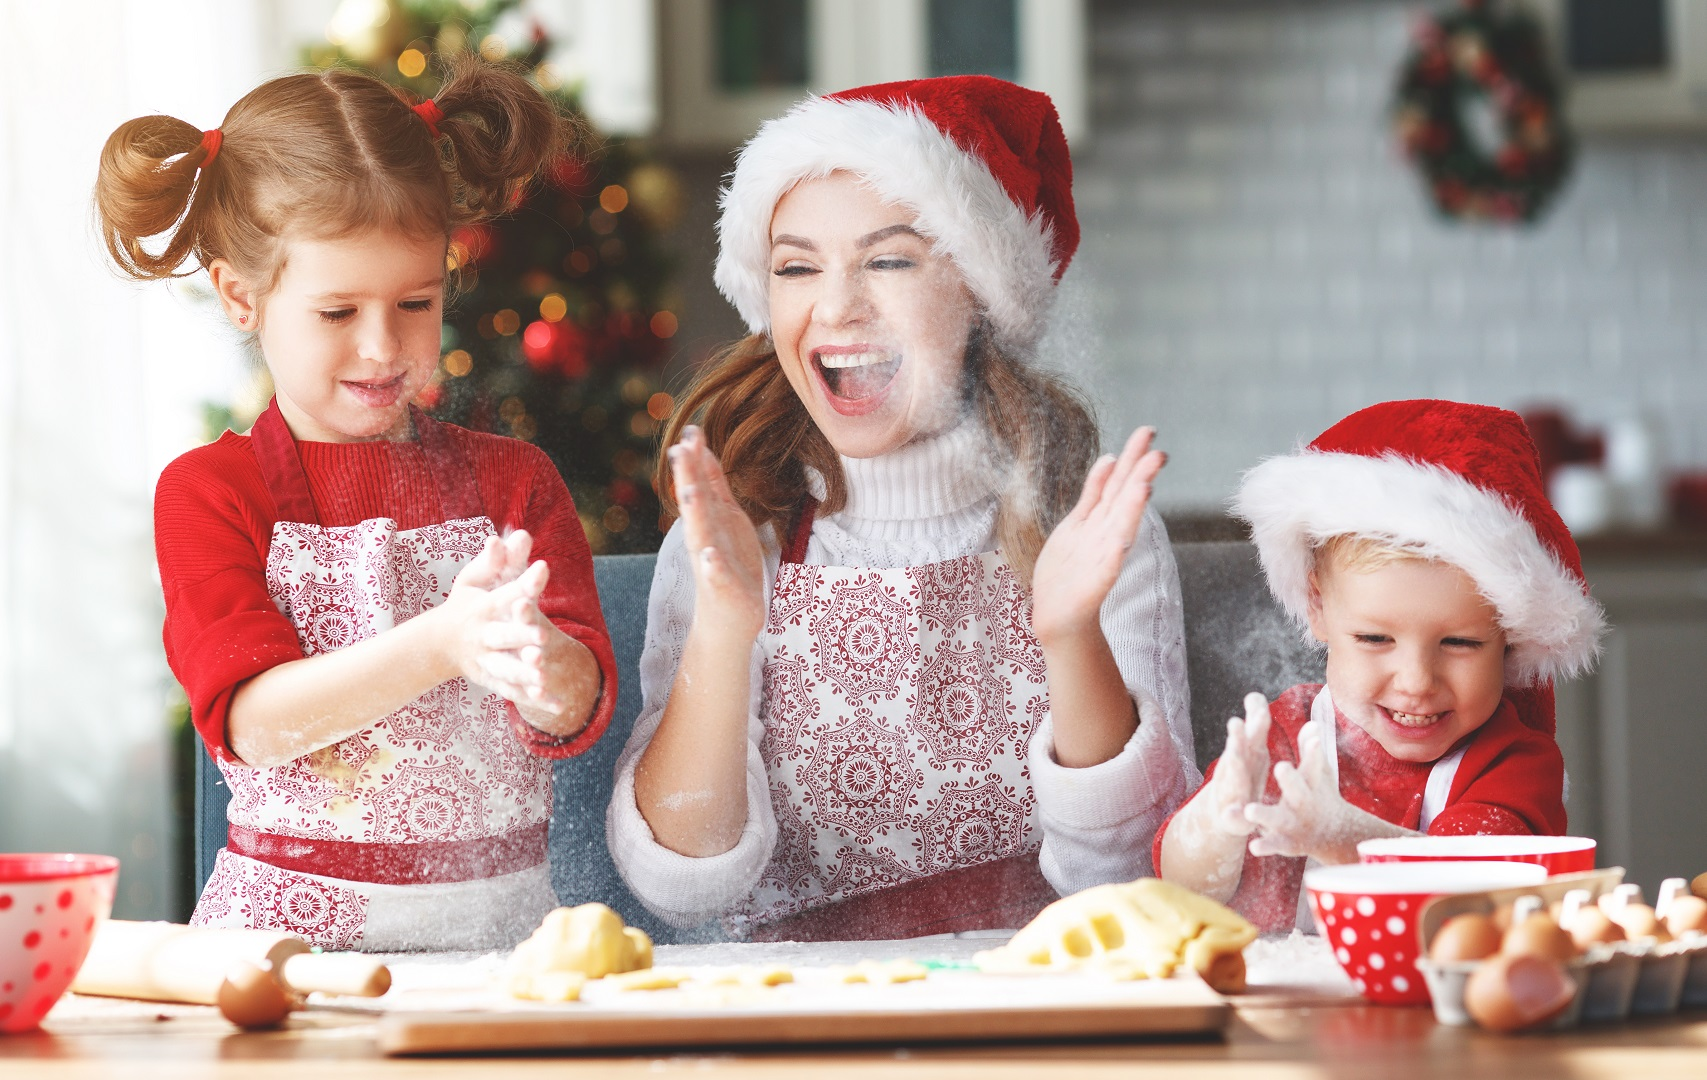 Mother and Children Baking for the Holidays Wearing Santa Hats